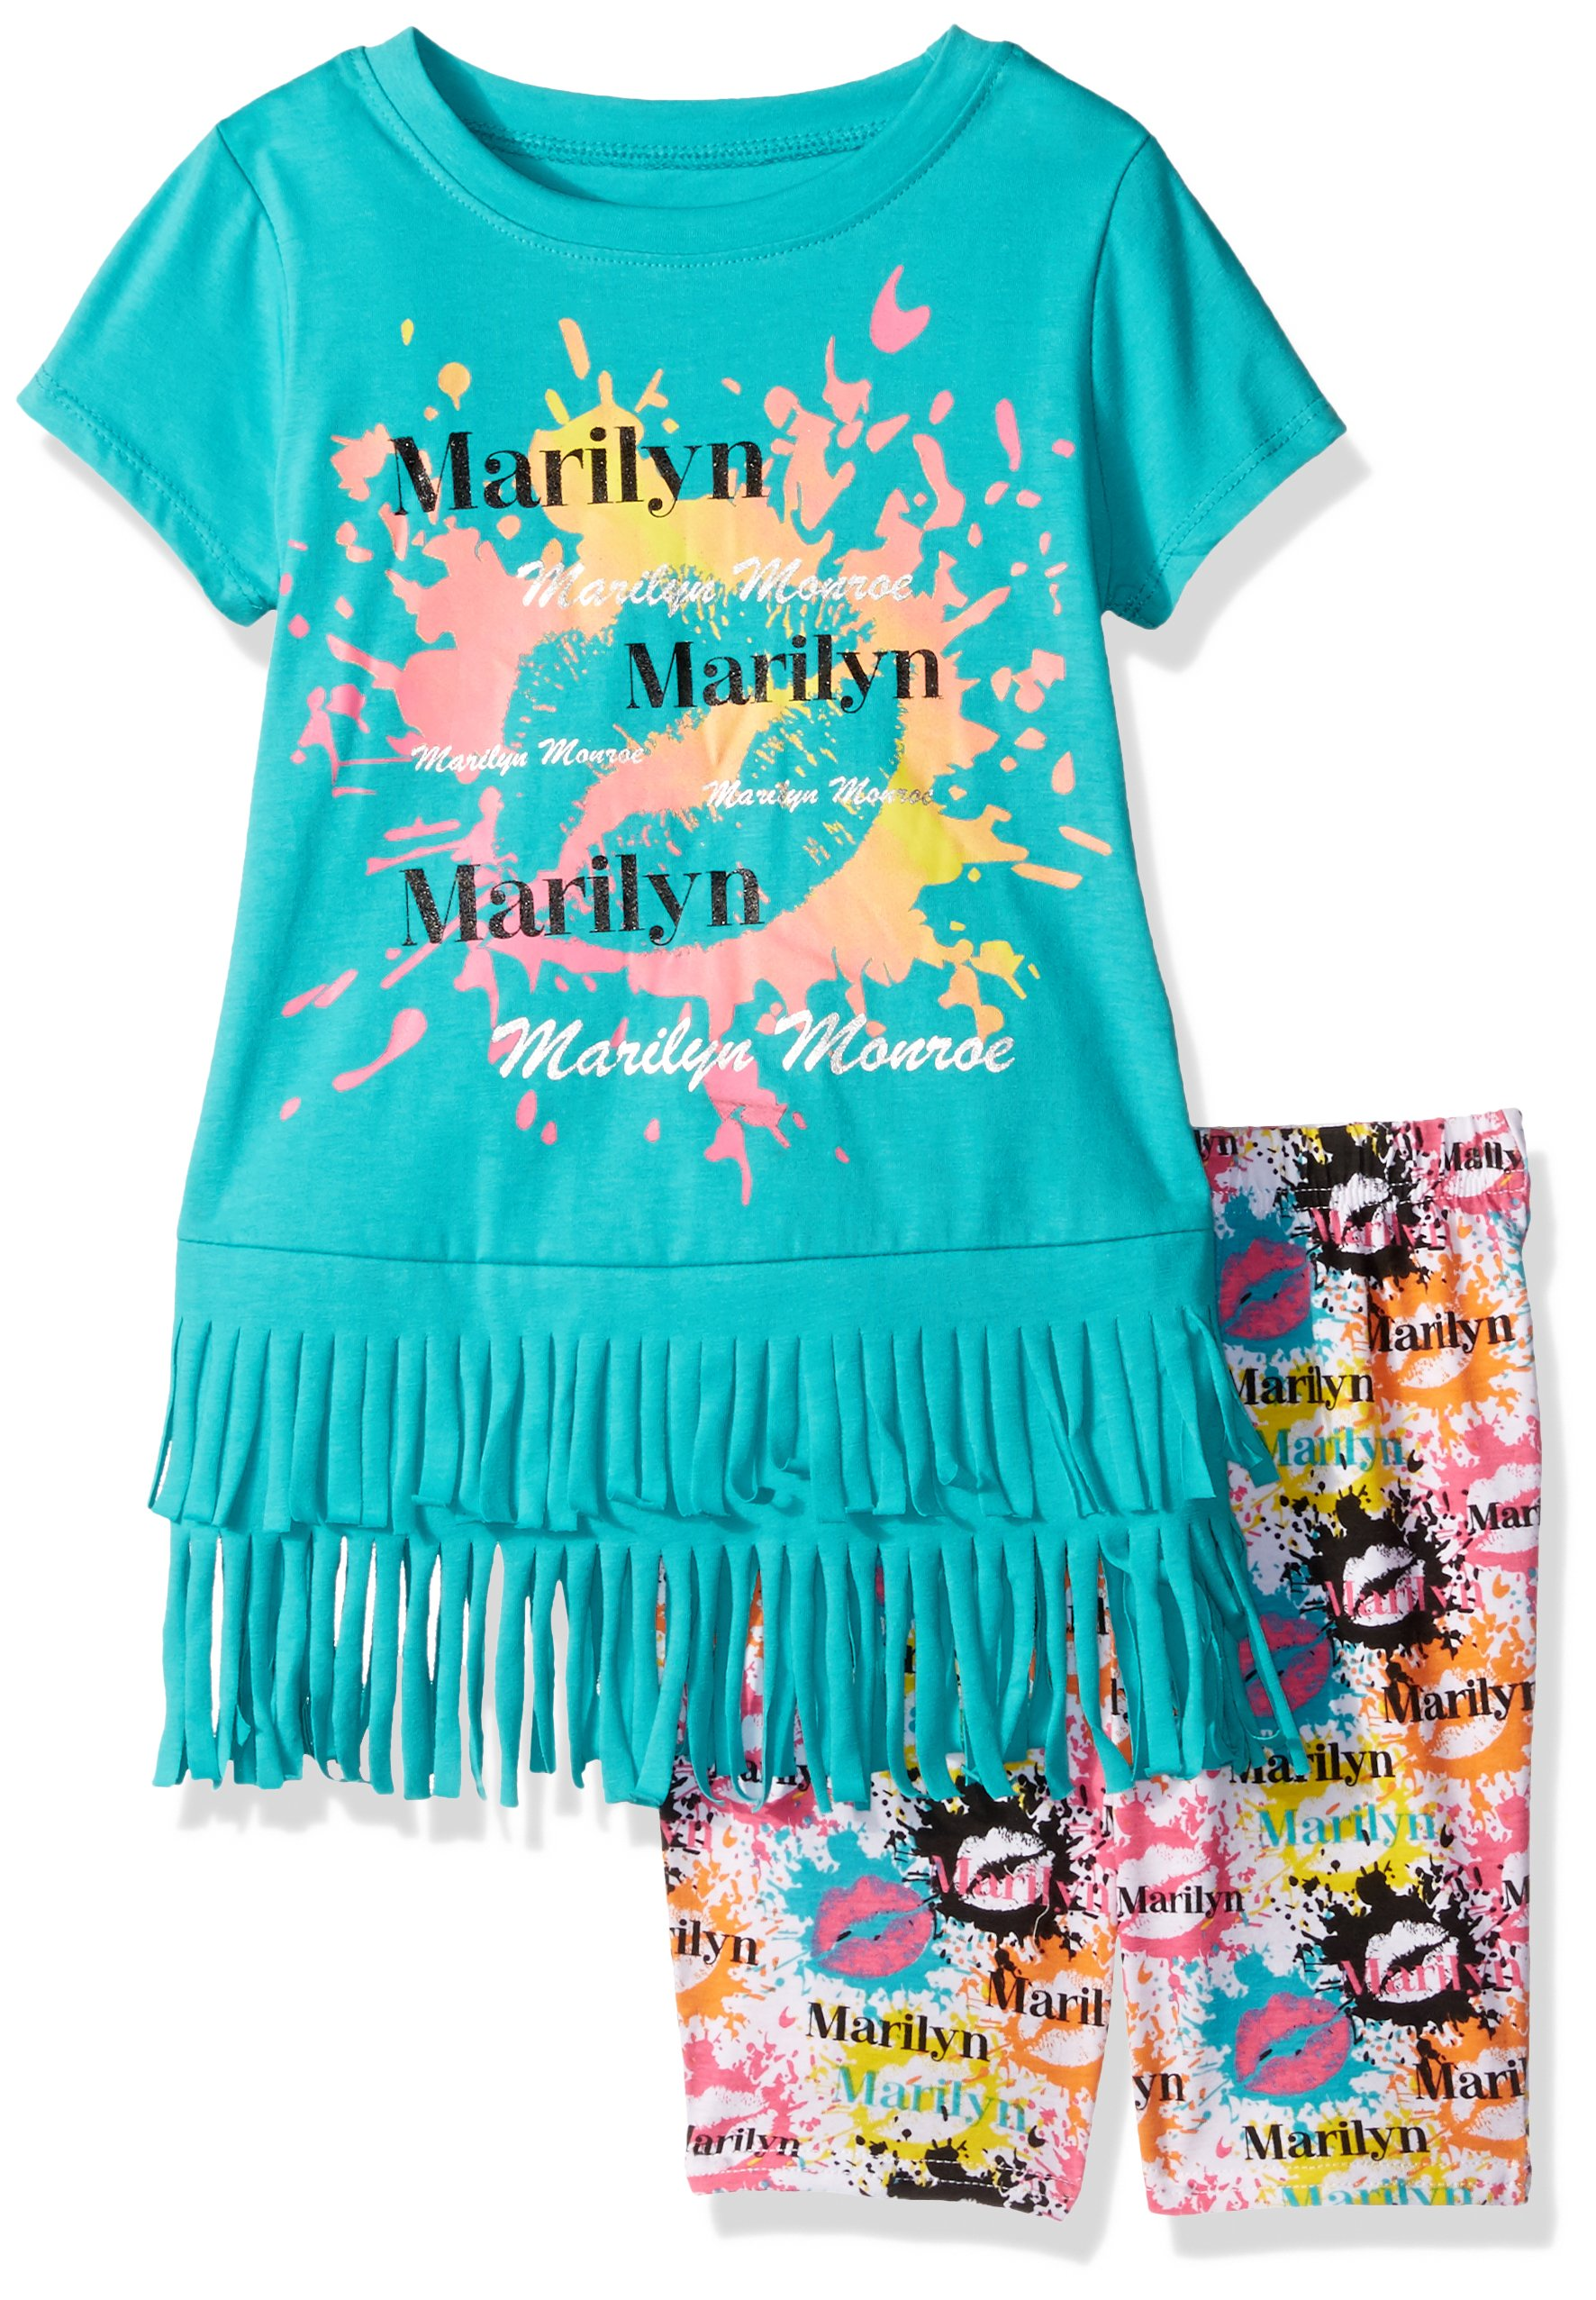 Marilyn Monroe Big Girls' Fashion Bike Short Set, Teal, 10